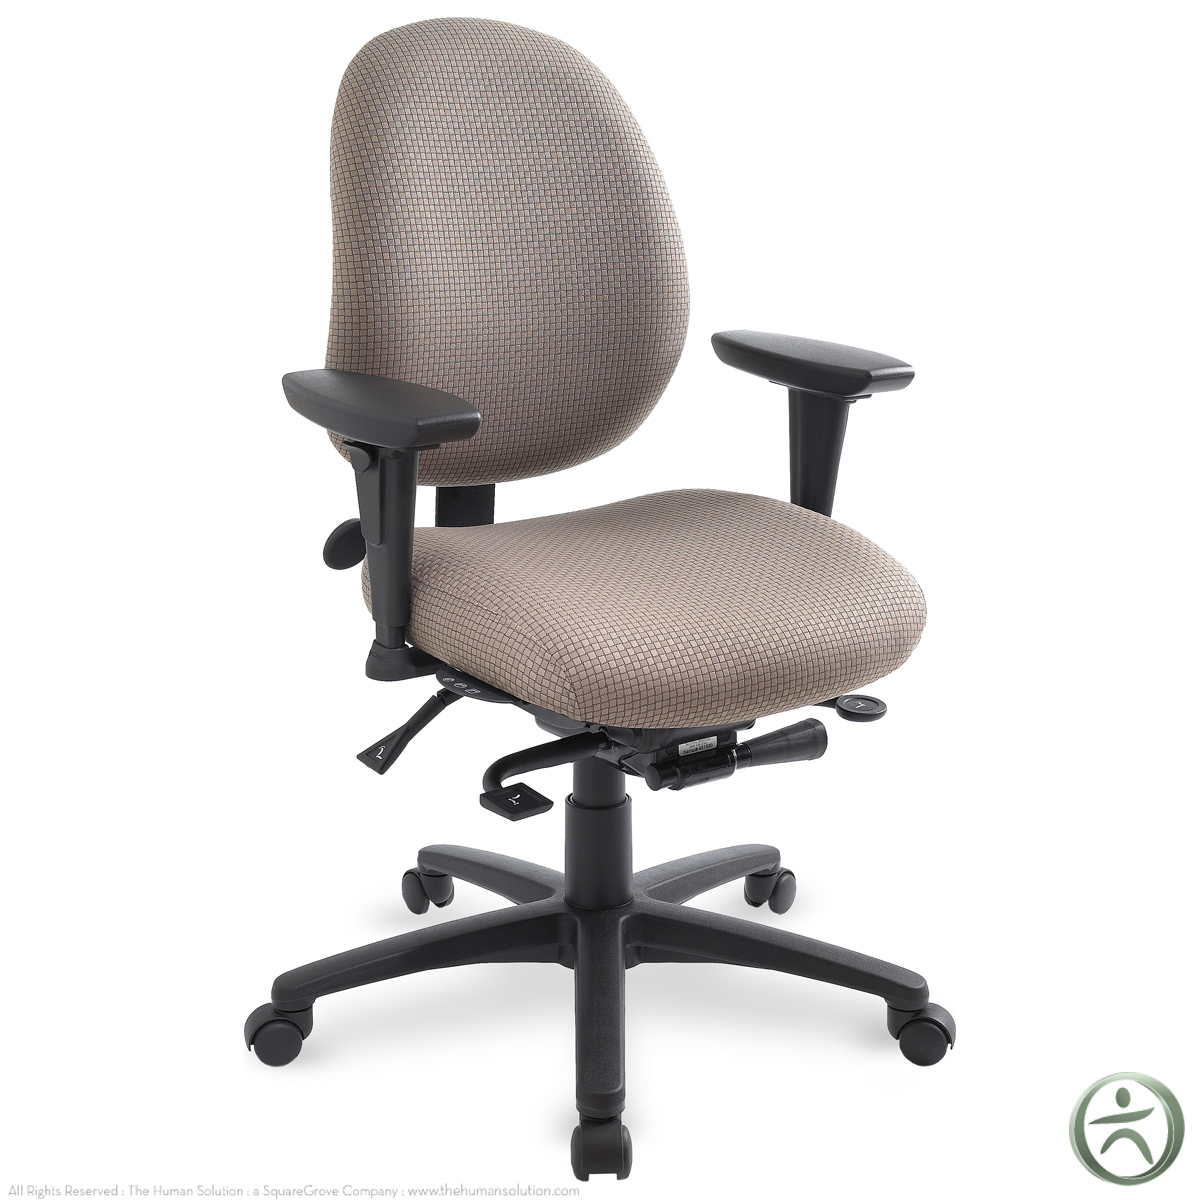 back support cushion for chair ergocentric geocentric task chair